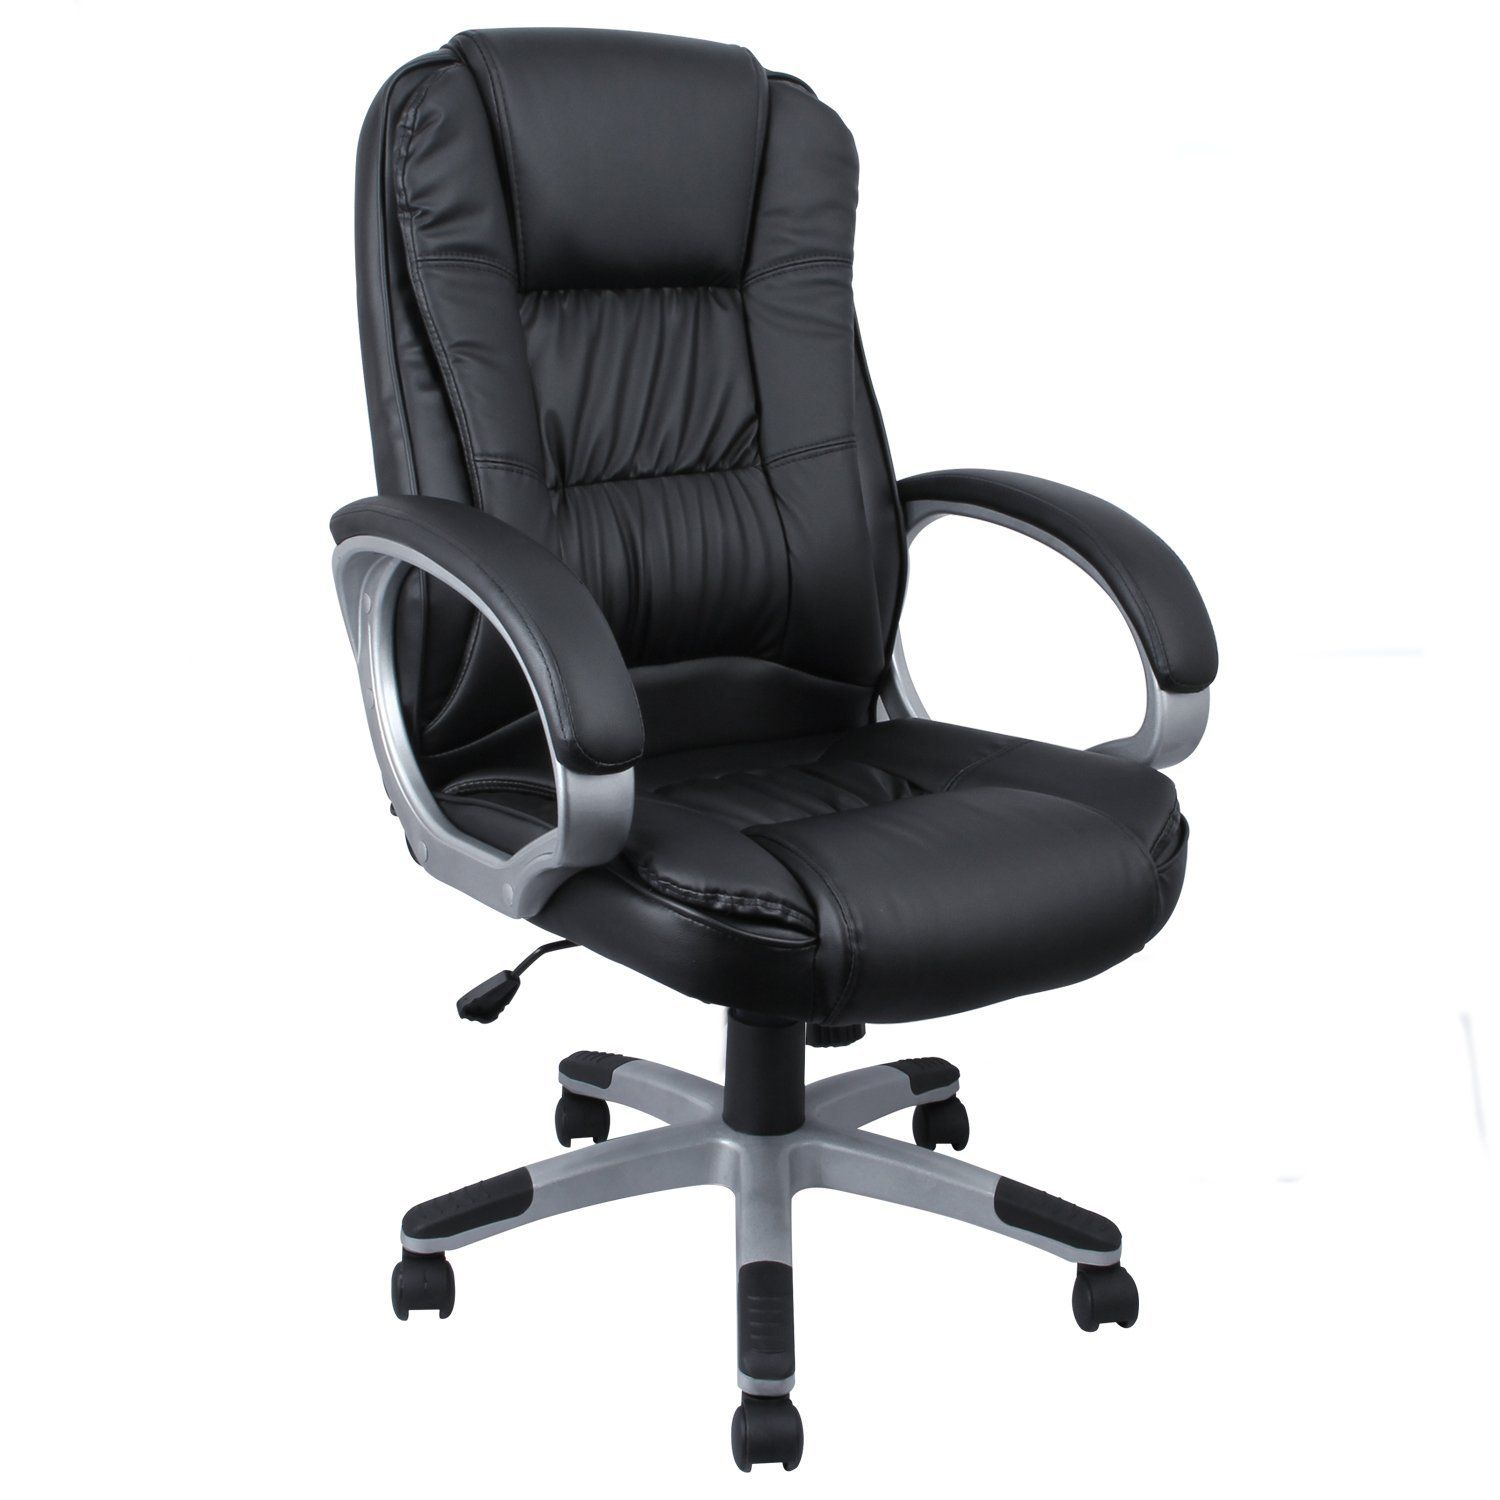 9 Bellezza Ergonomic Office Leather Chair Office Chairs